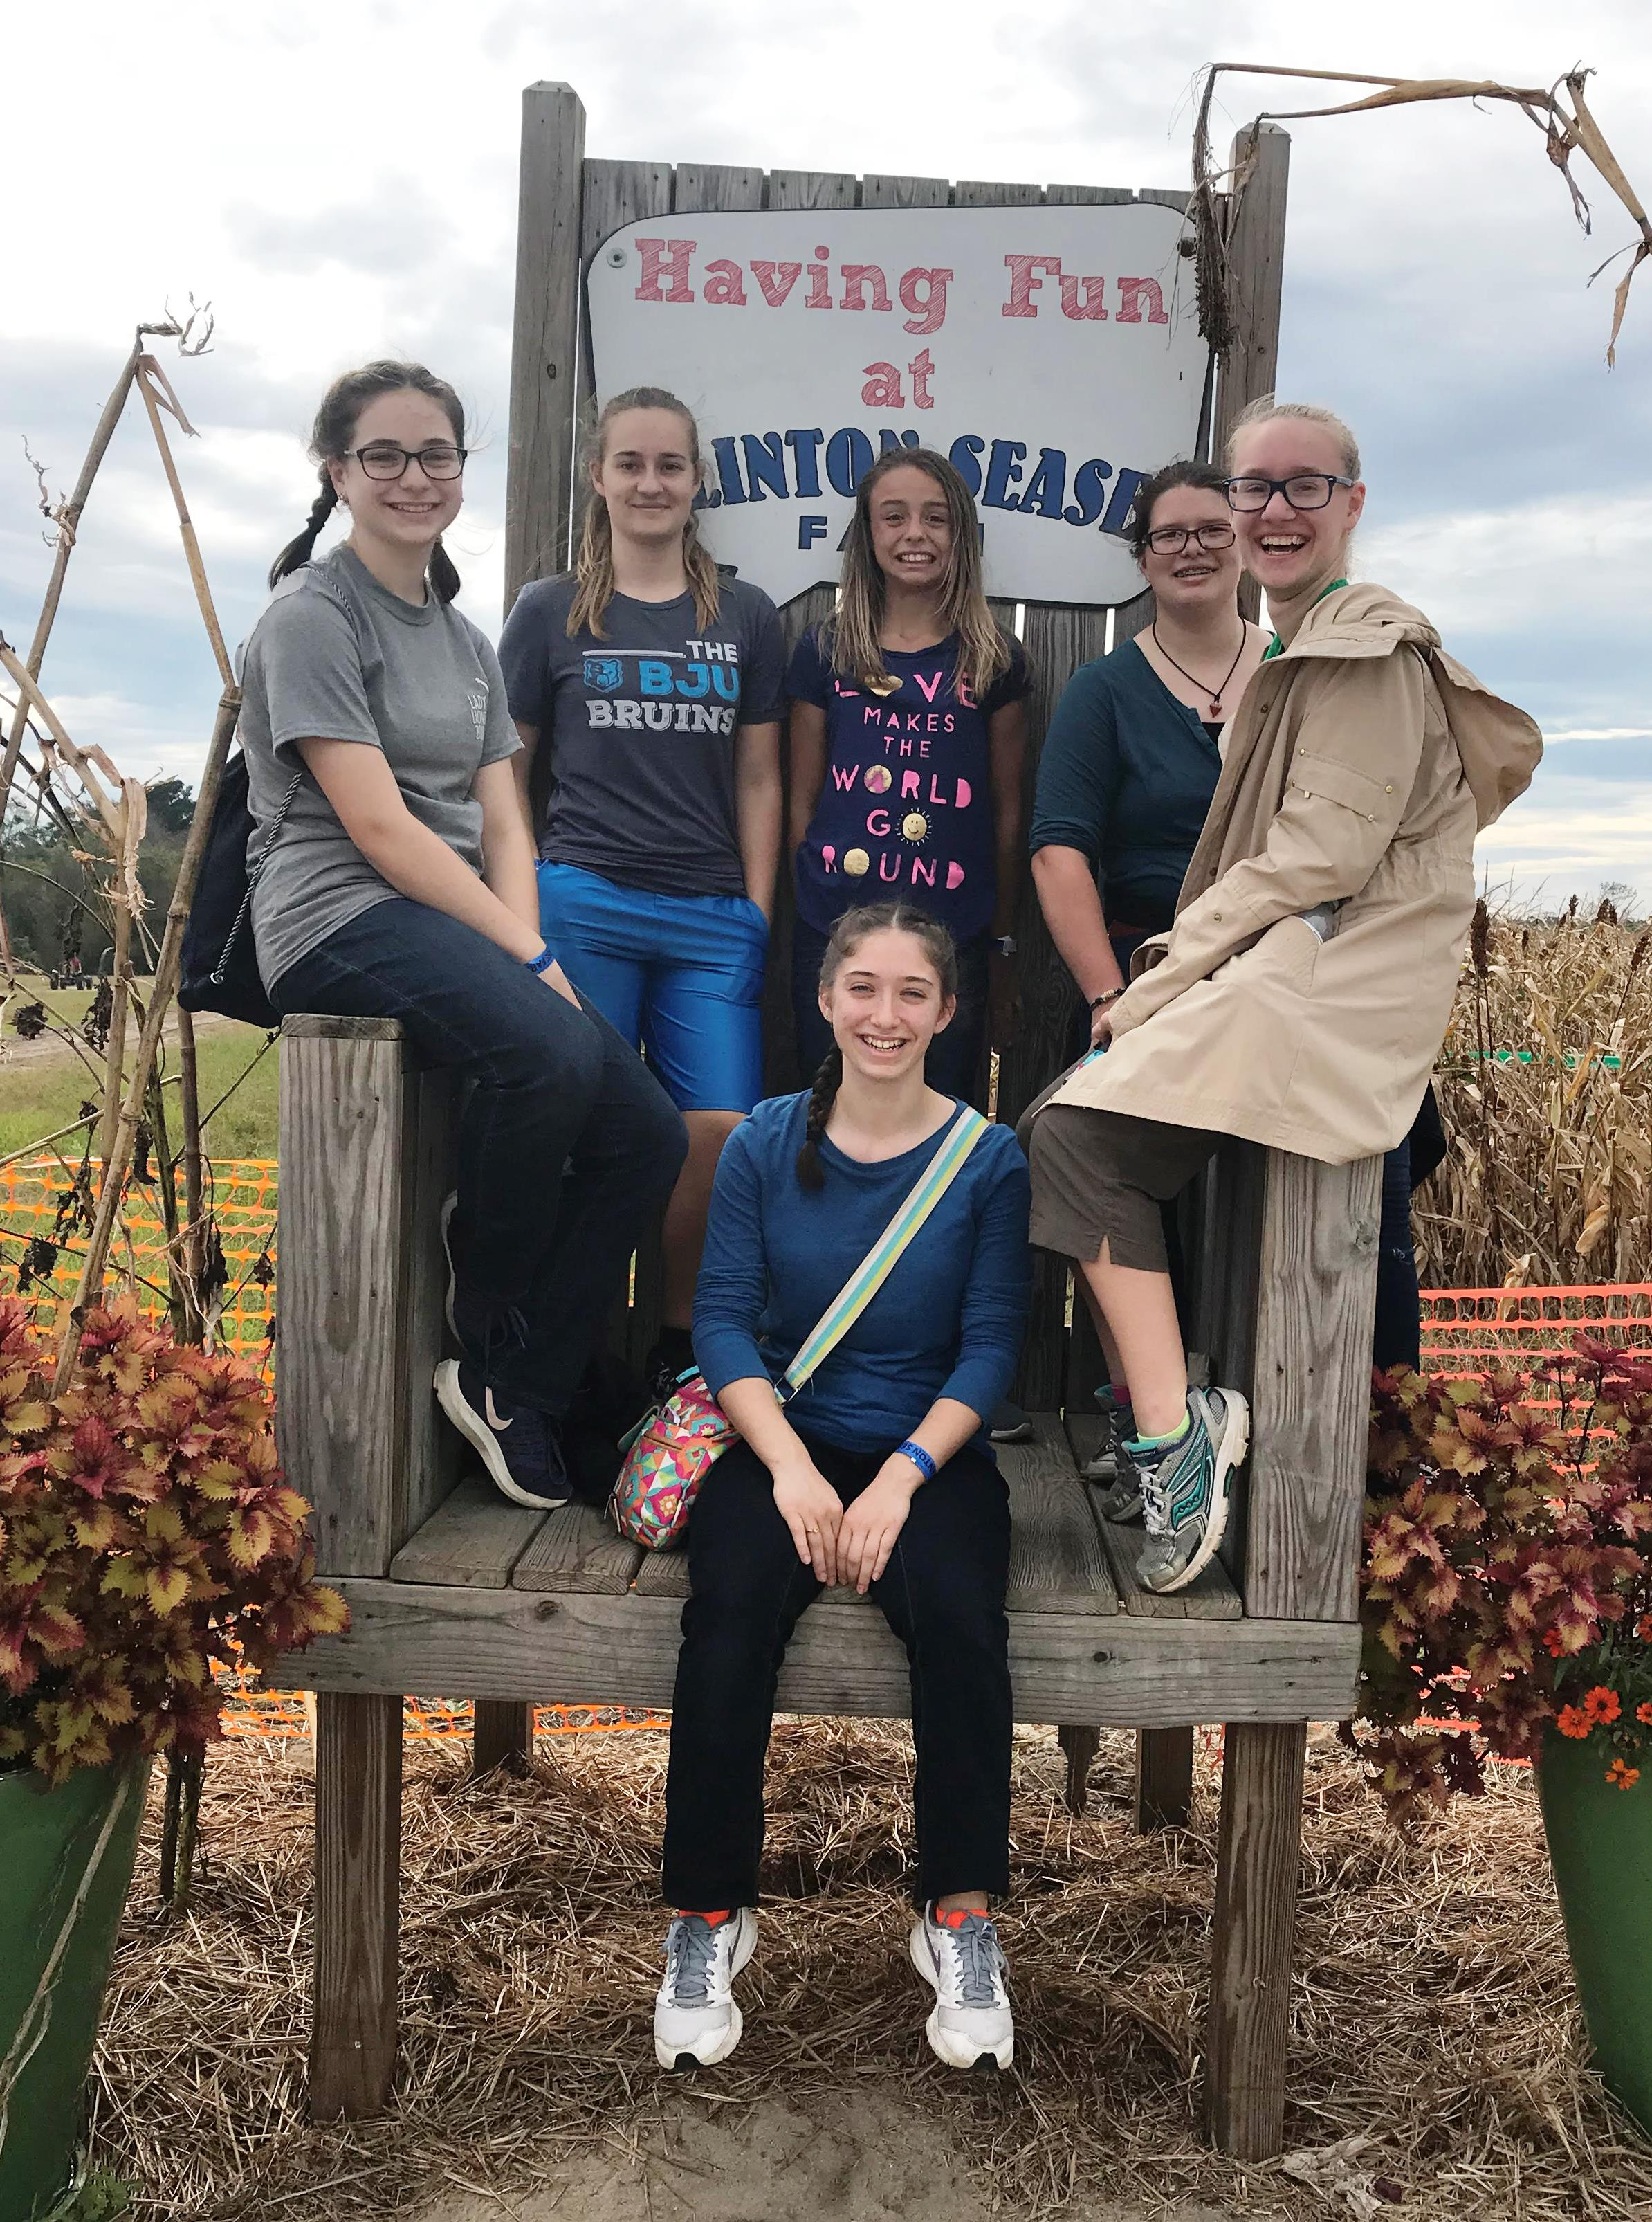 At the Corn Maze